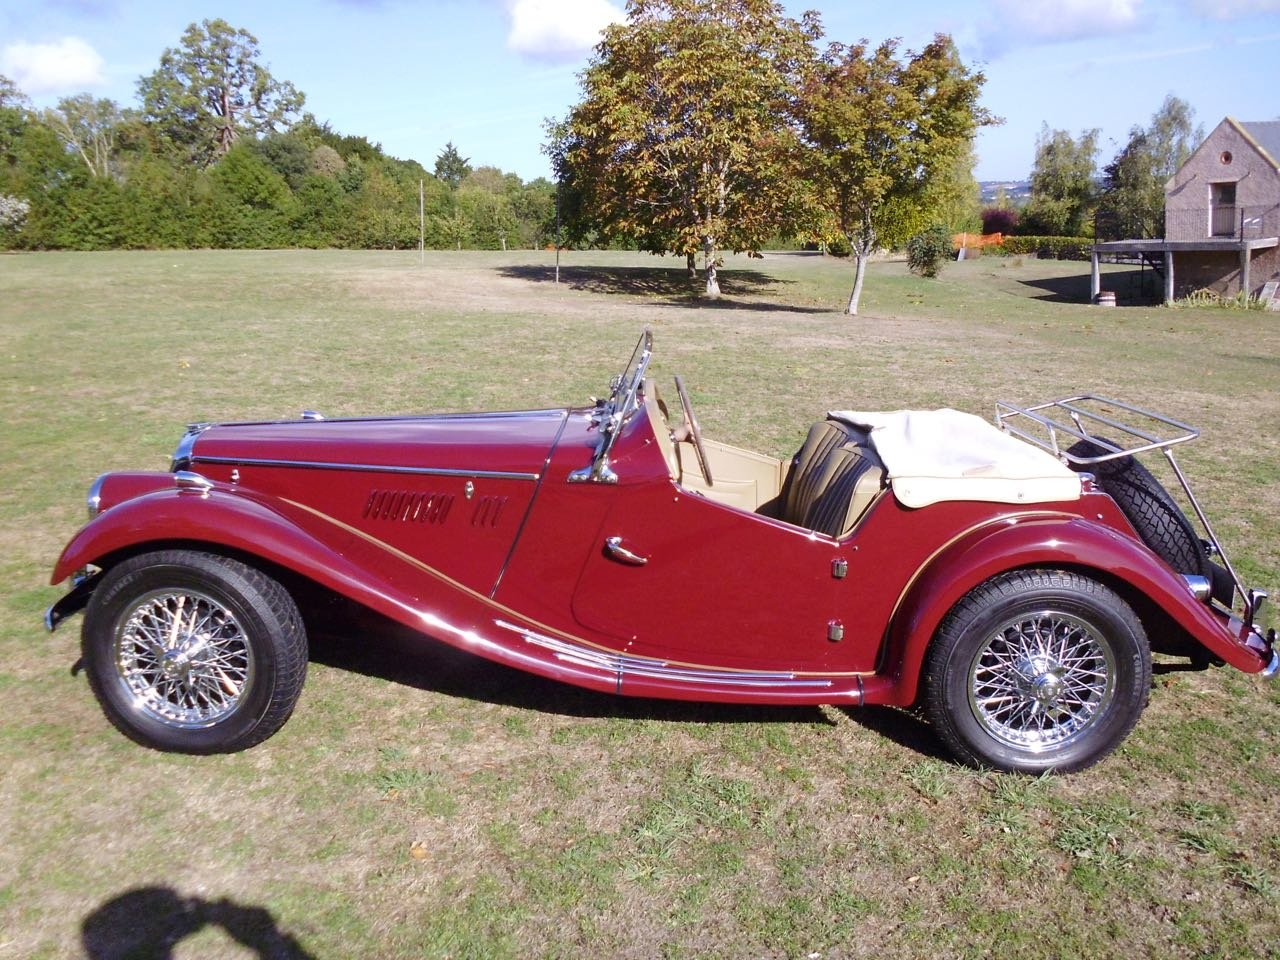 1954 concours MG TF Midget For Sale (picture 3 of 6)